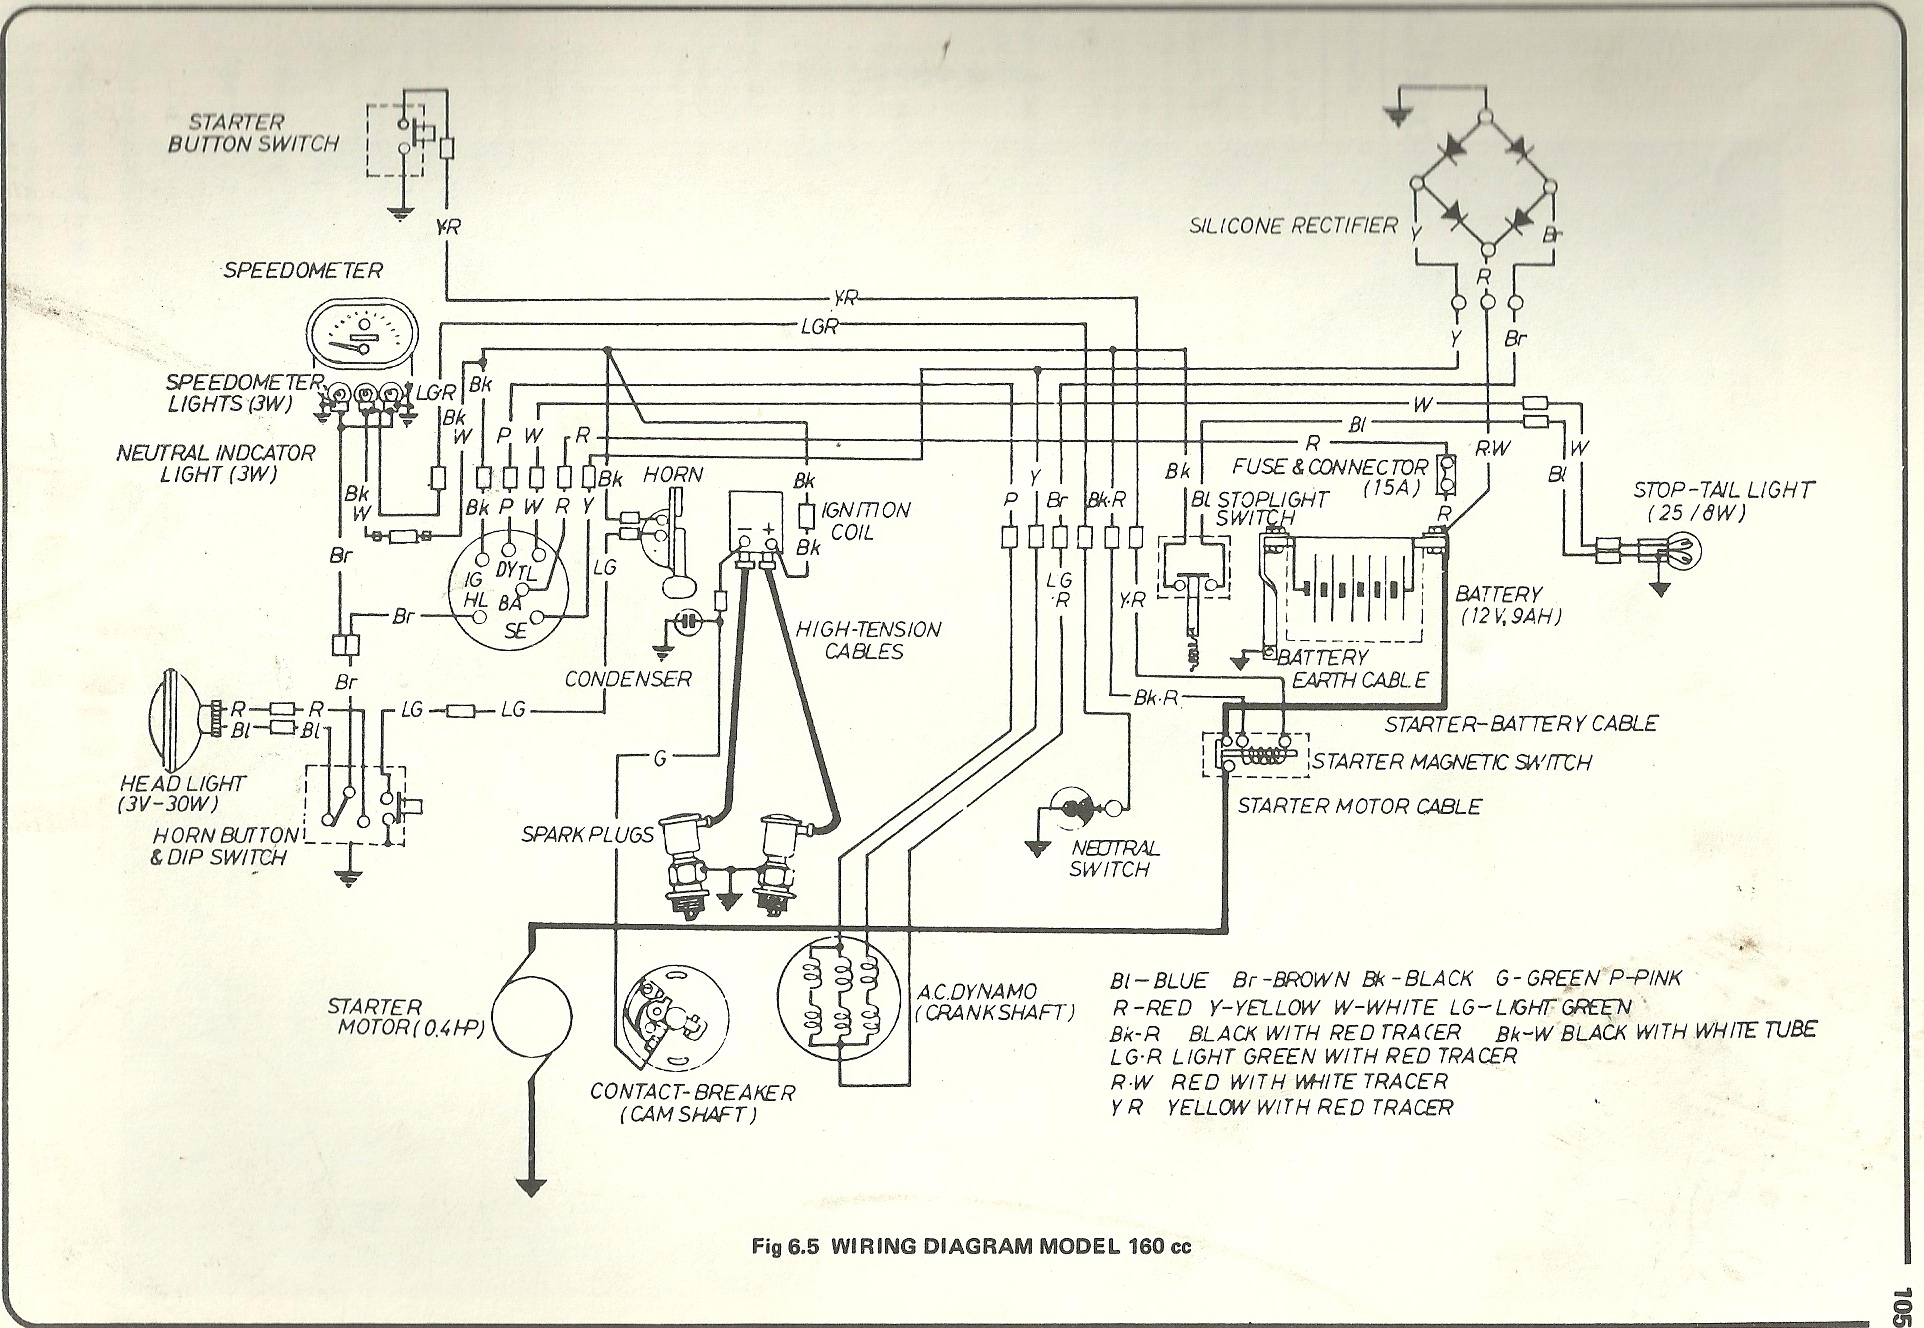 wiring diagrams rh oregonmotorcycleparts com